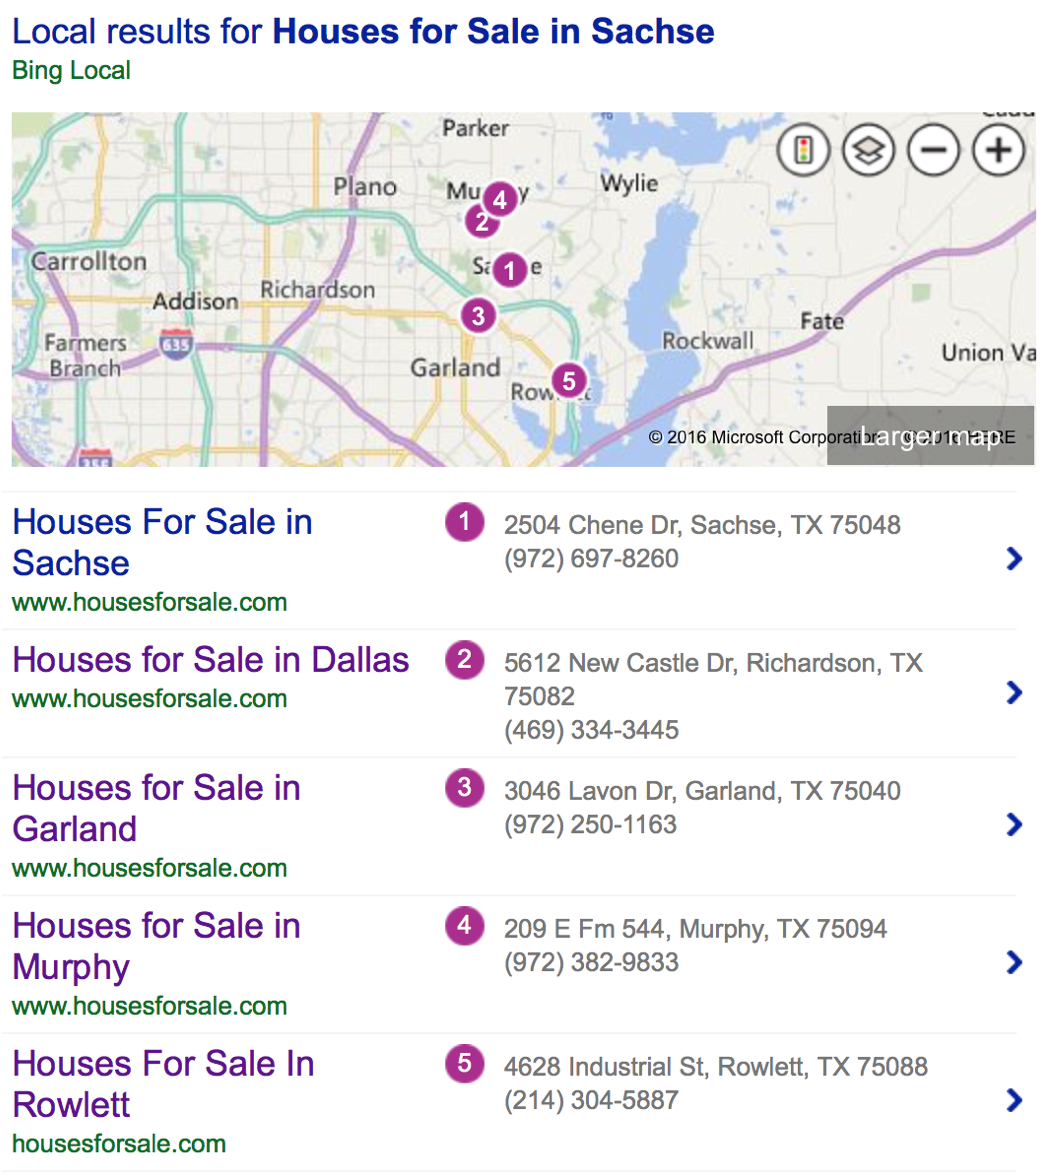 HousesForSale.com #1 on Bing